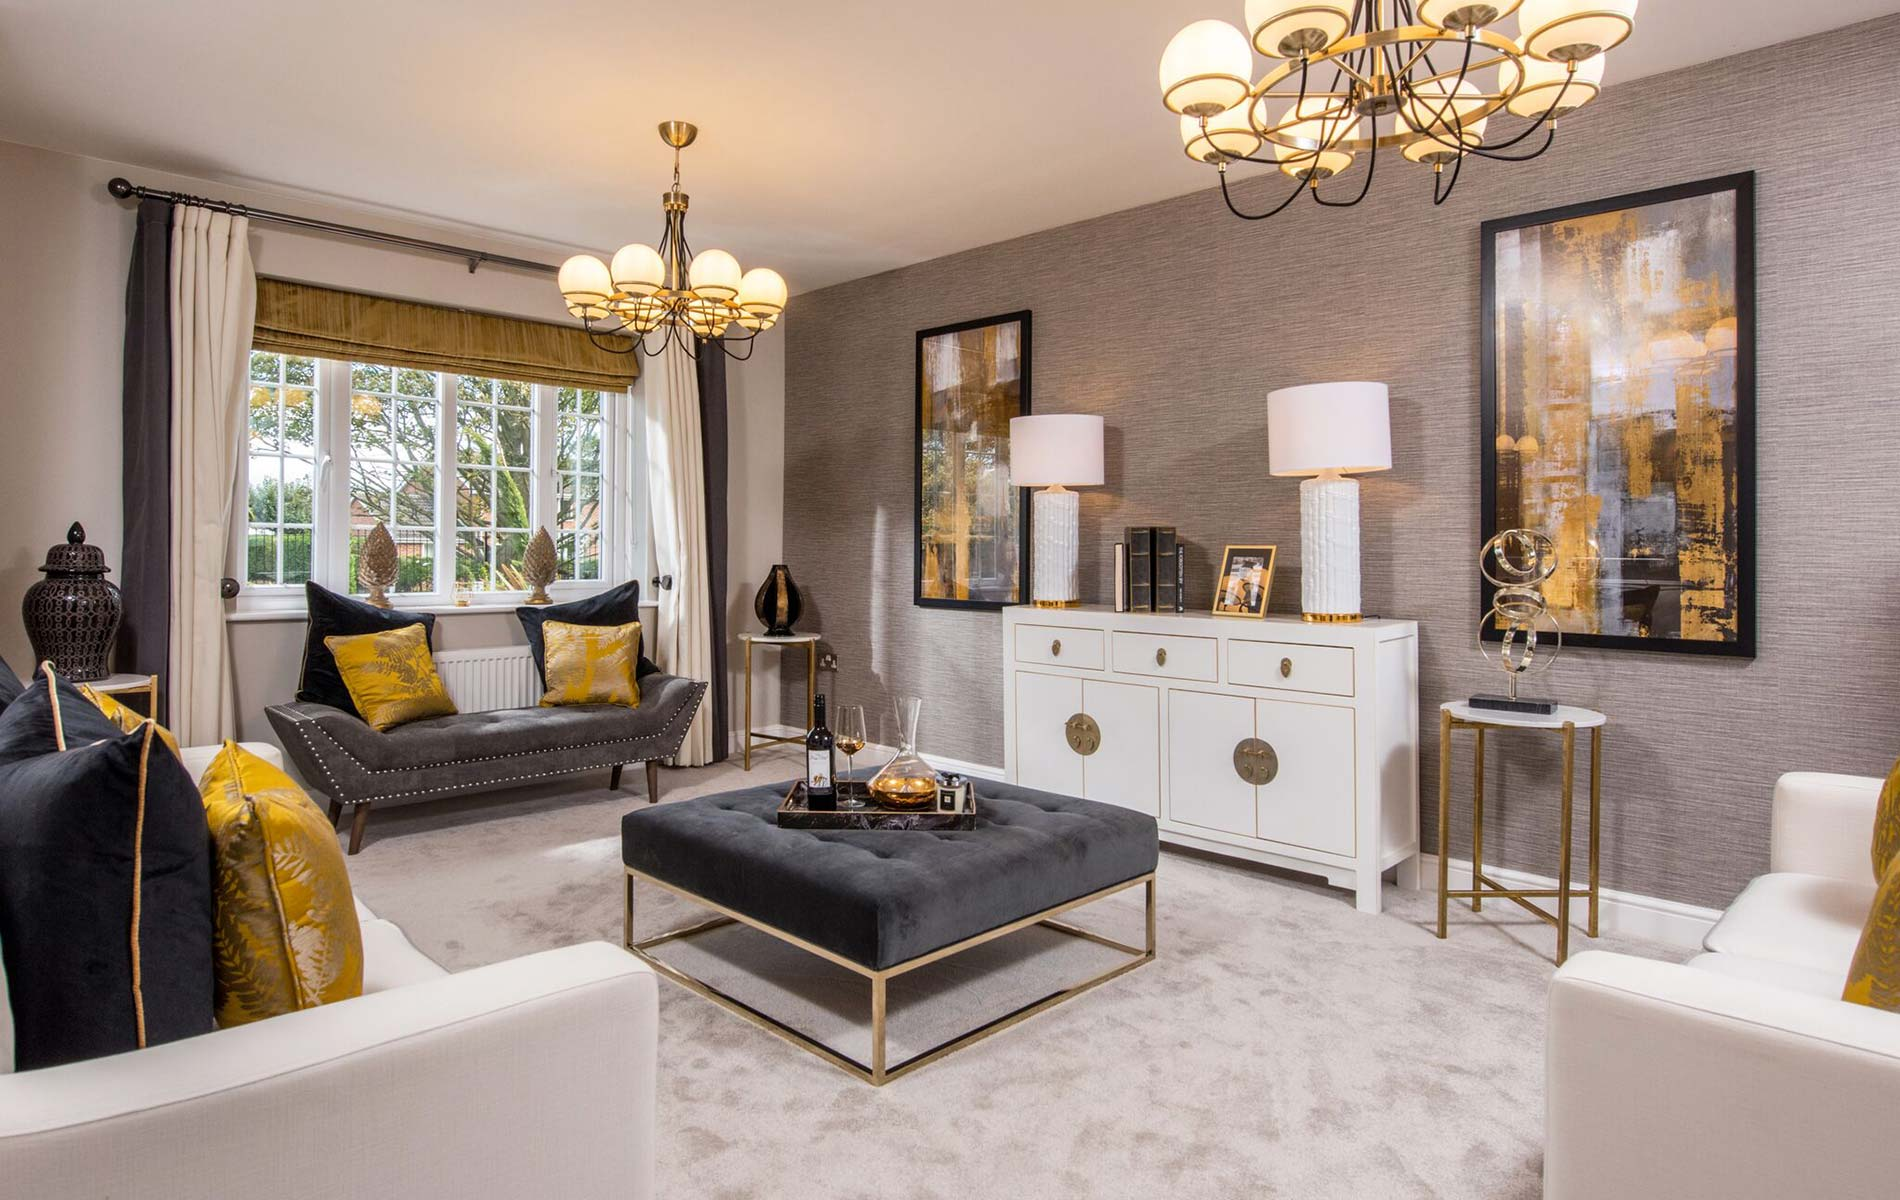 Private Residences Interior Motives NW